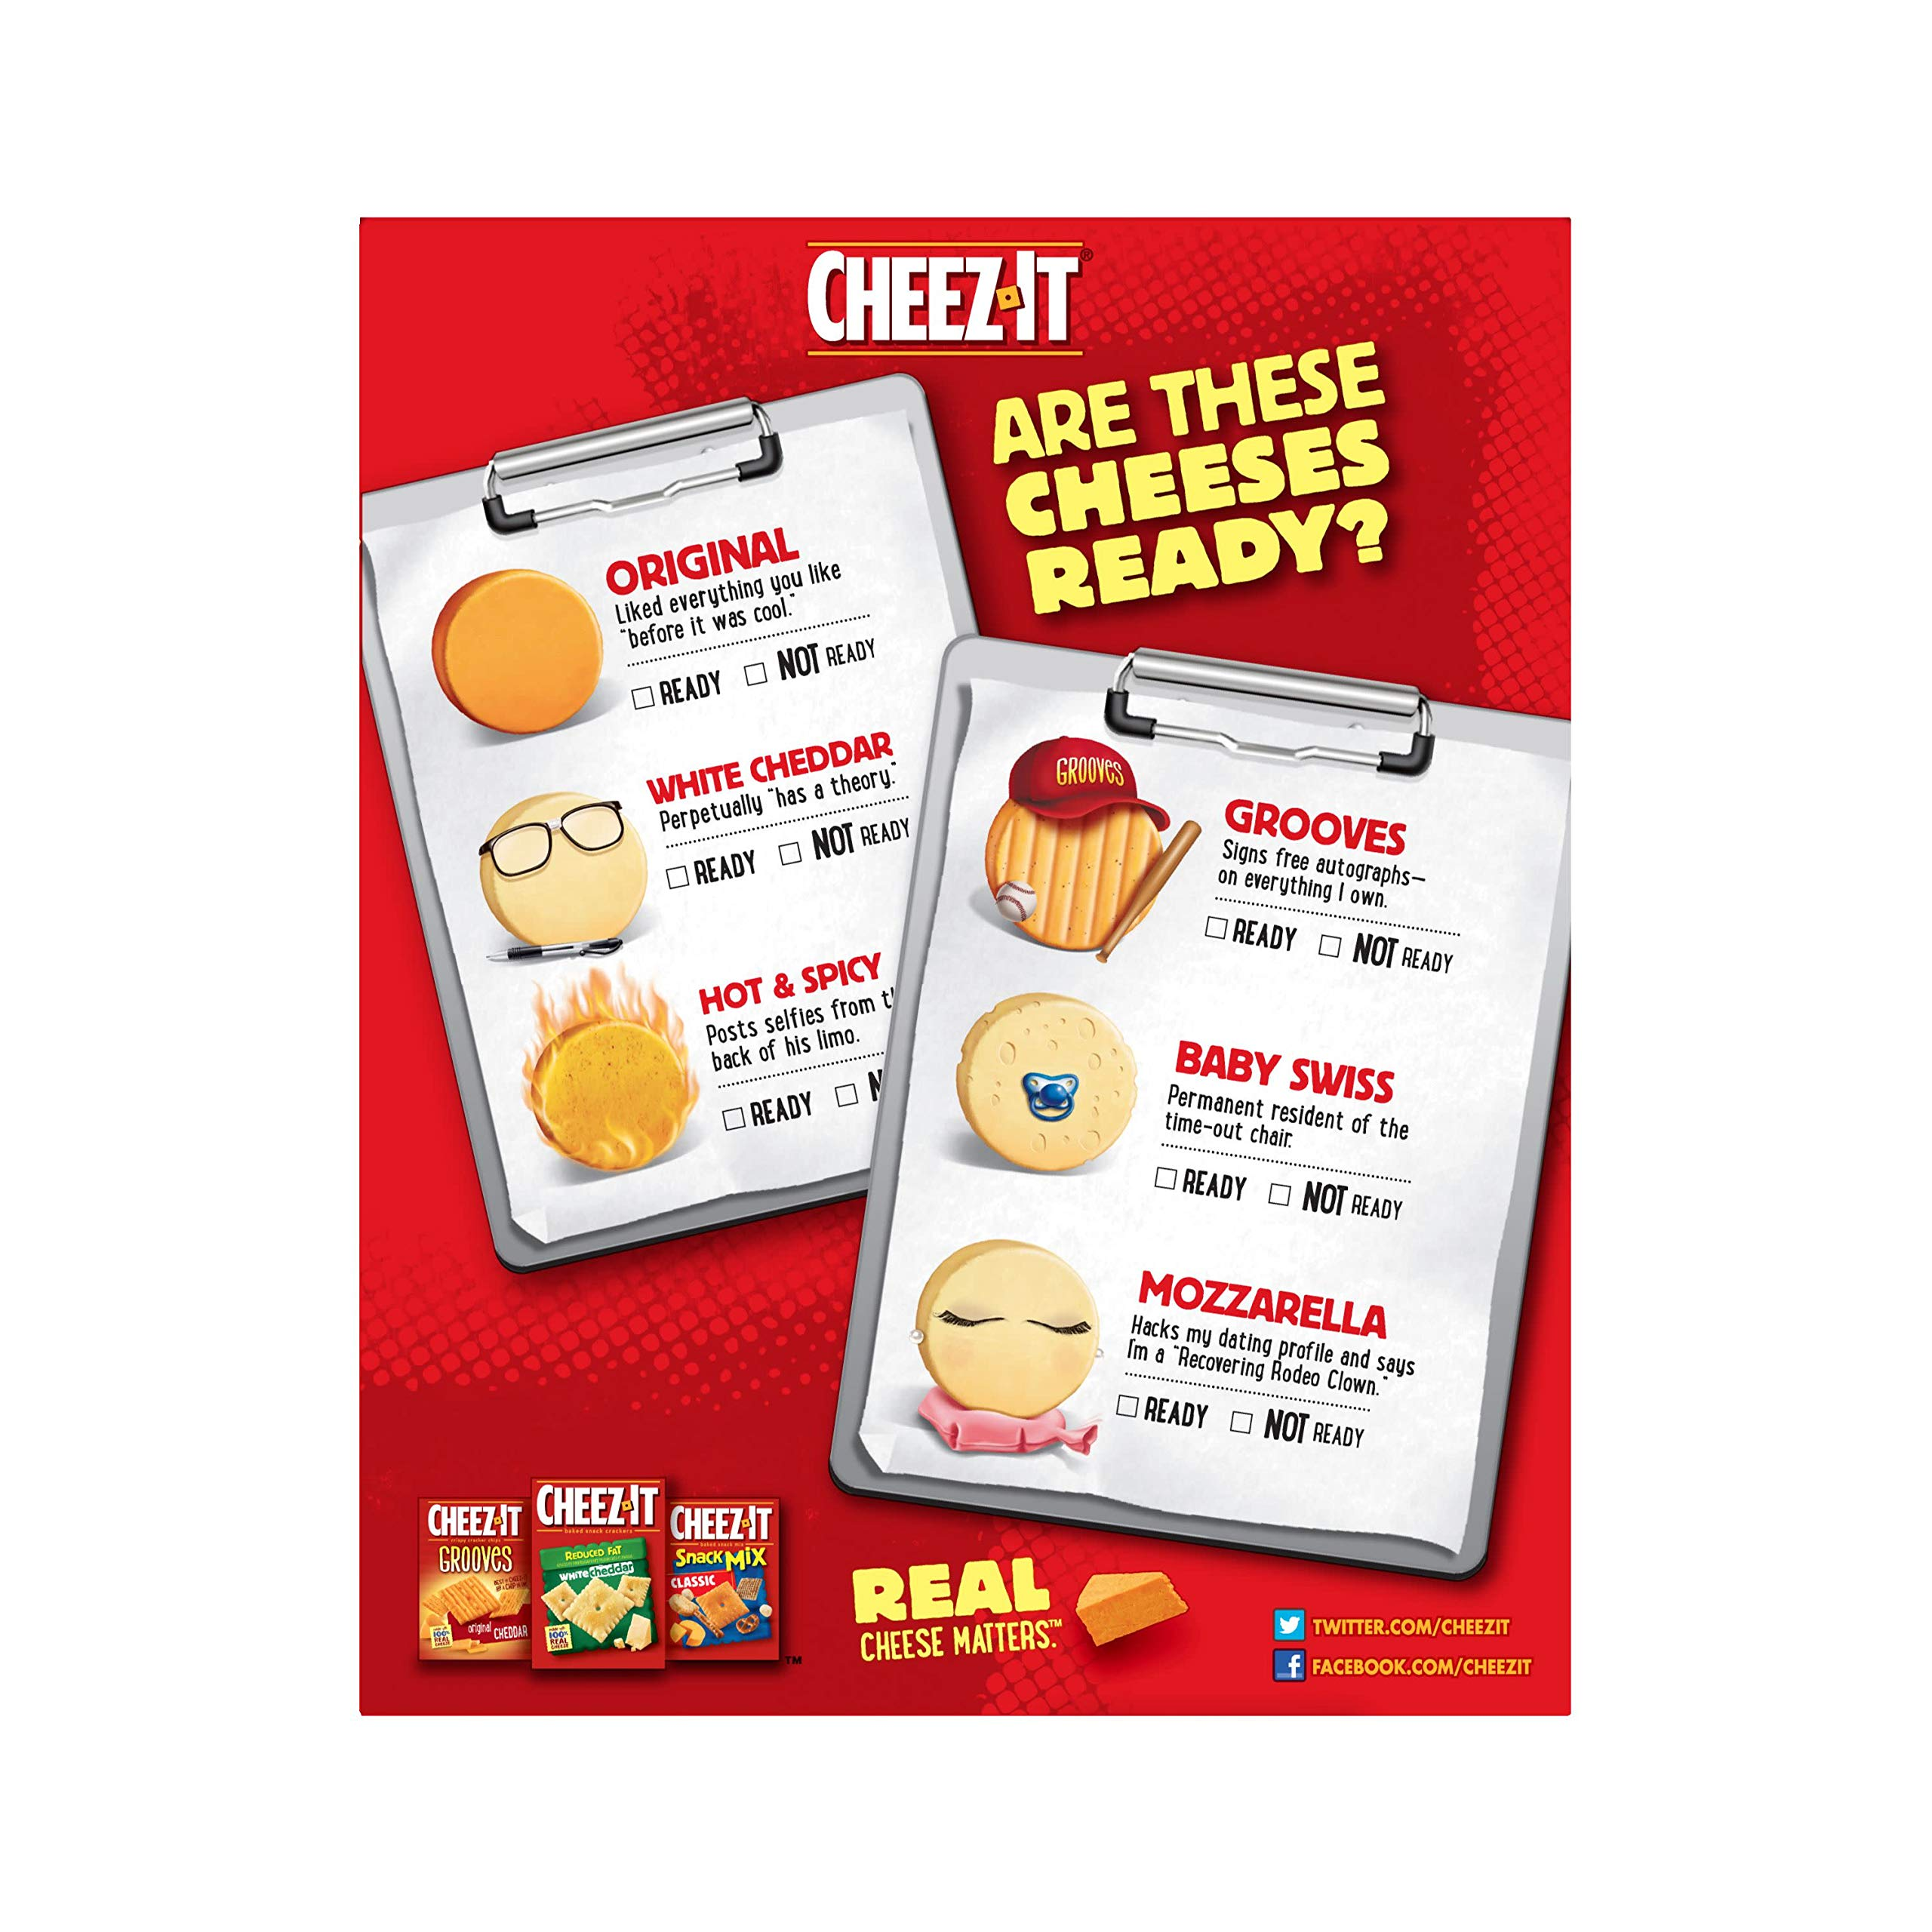 Cheez-It Baked Snack Cheese Crackers, Reduced Fat, Original, 6 oz Box(Pack of 12) by Cheez-It (Image #8)